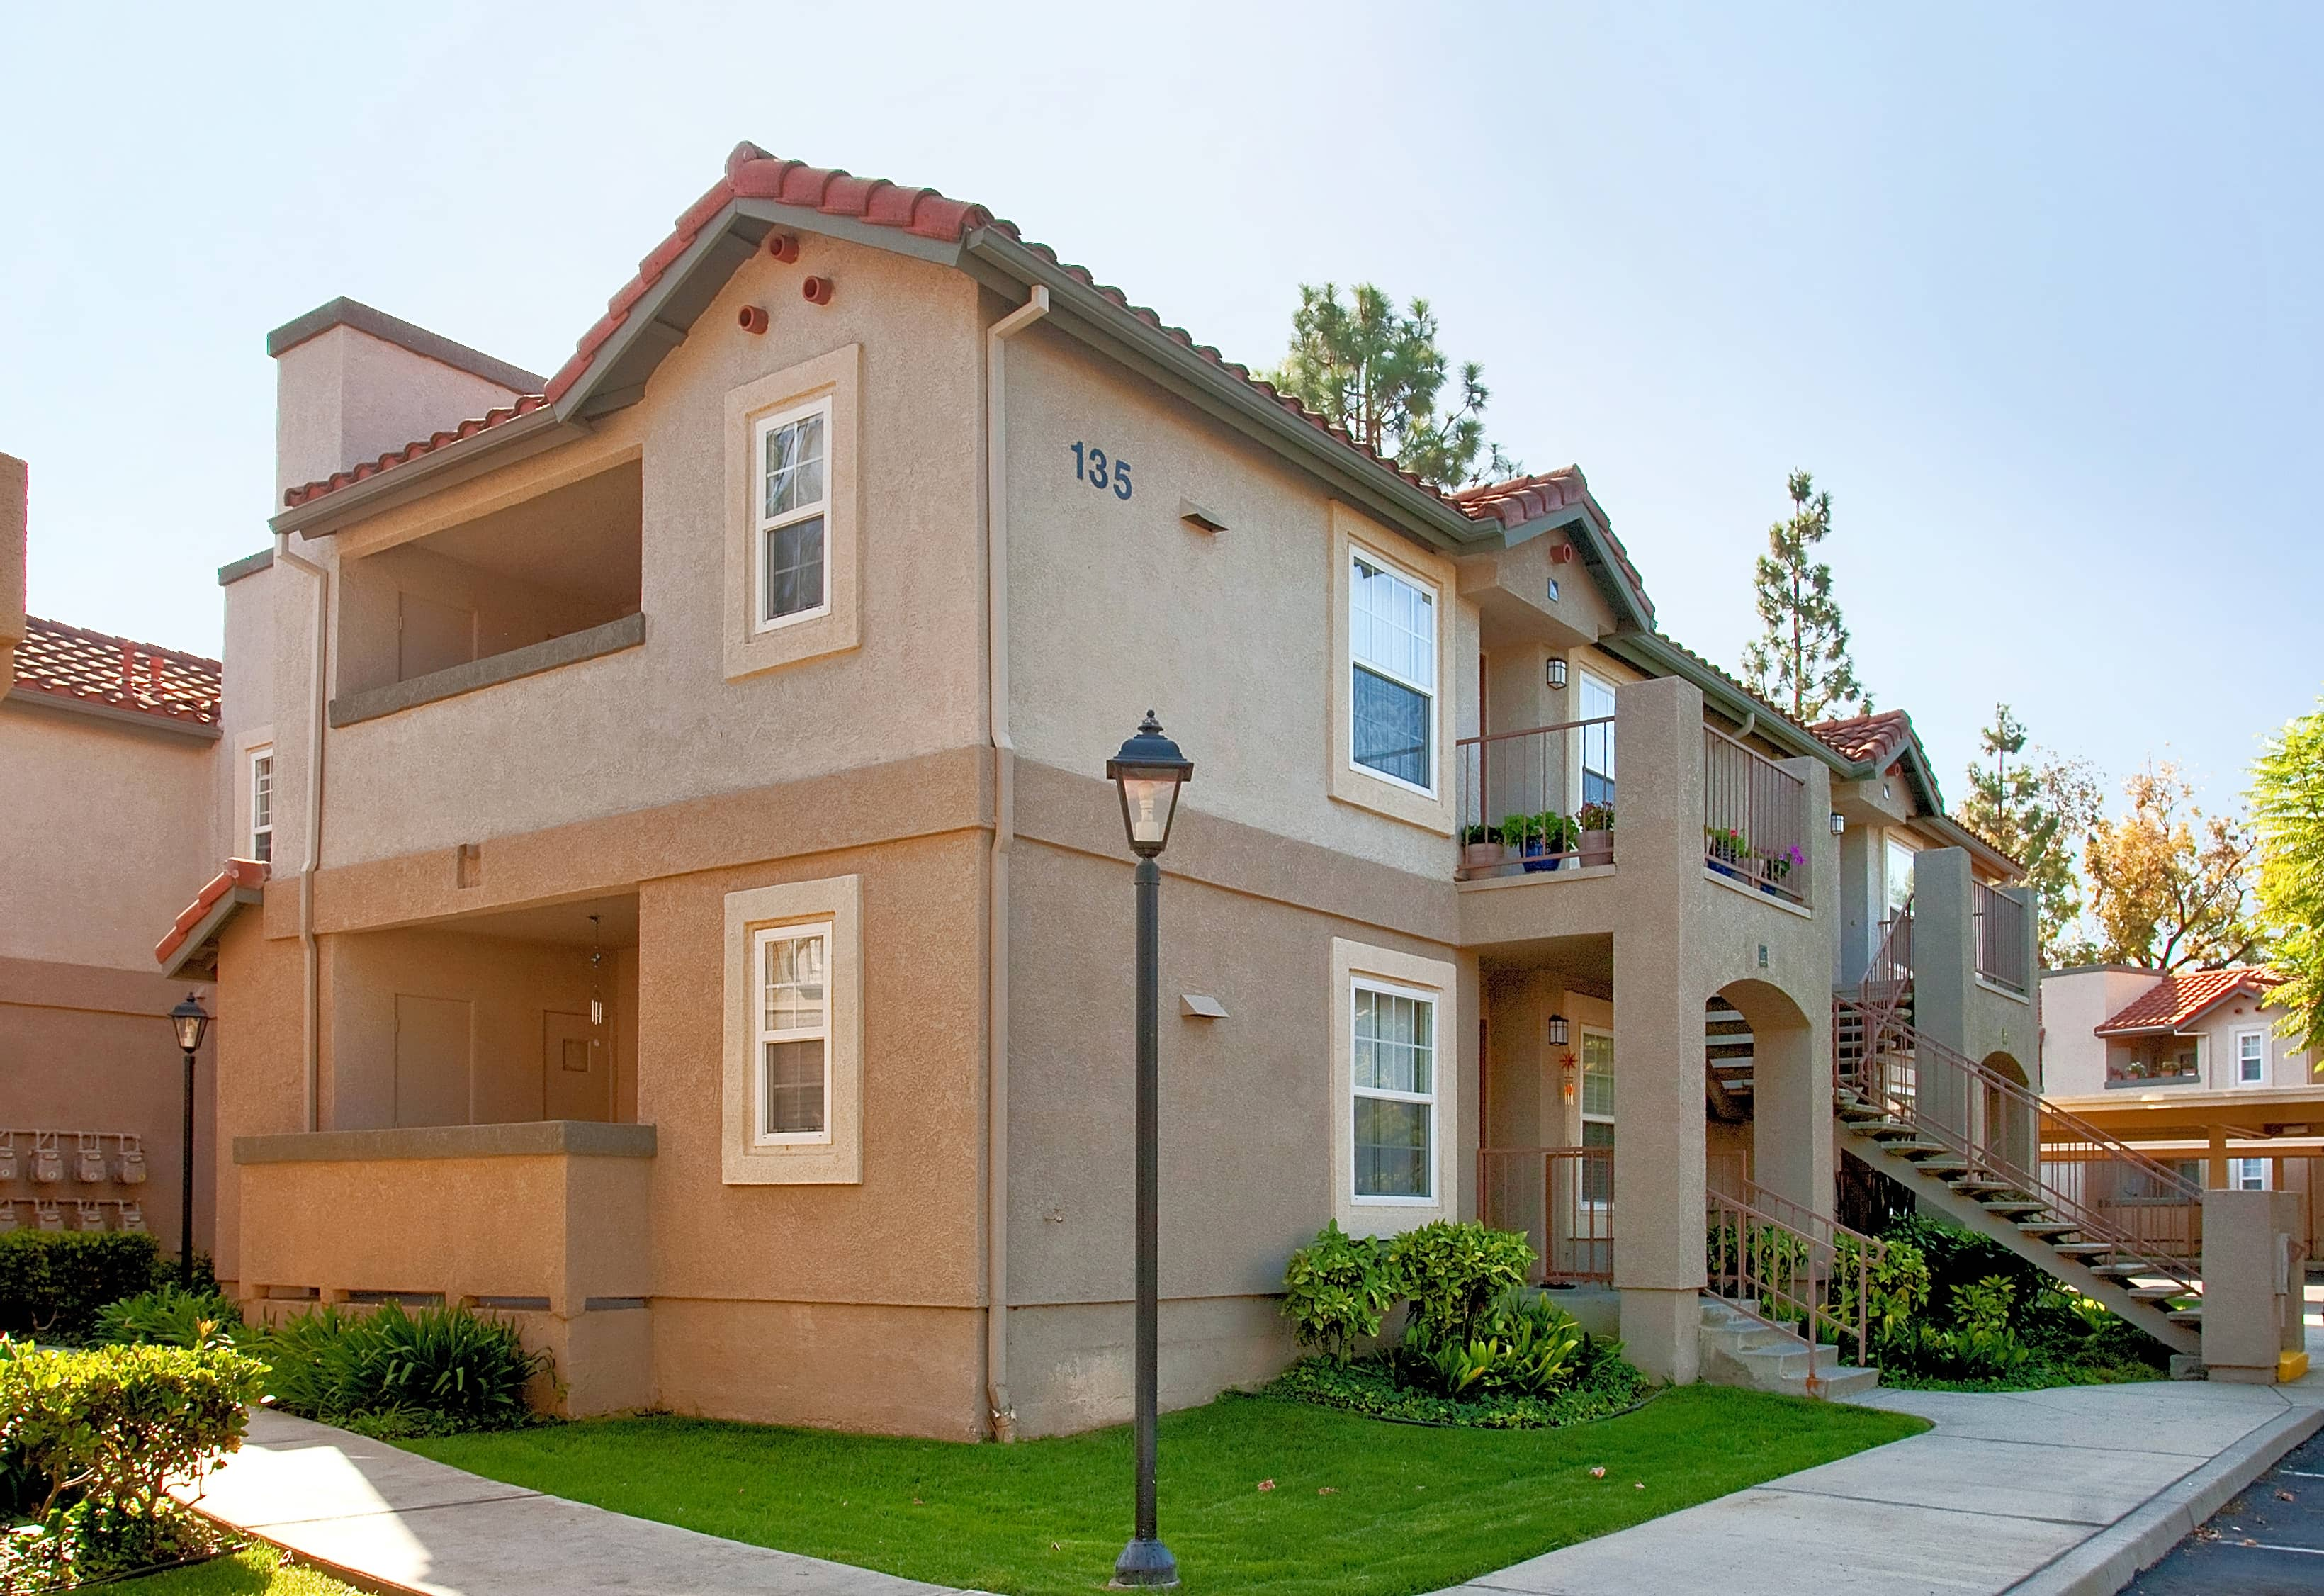 Photo: Camarillo Apartment for Rent - $1433.00 / month; 1 Bd & 1 Ba